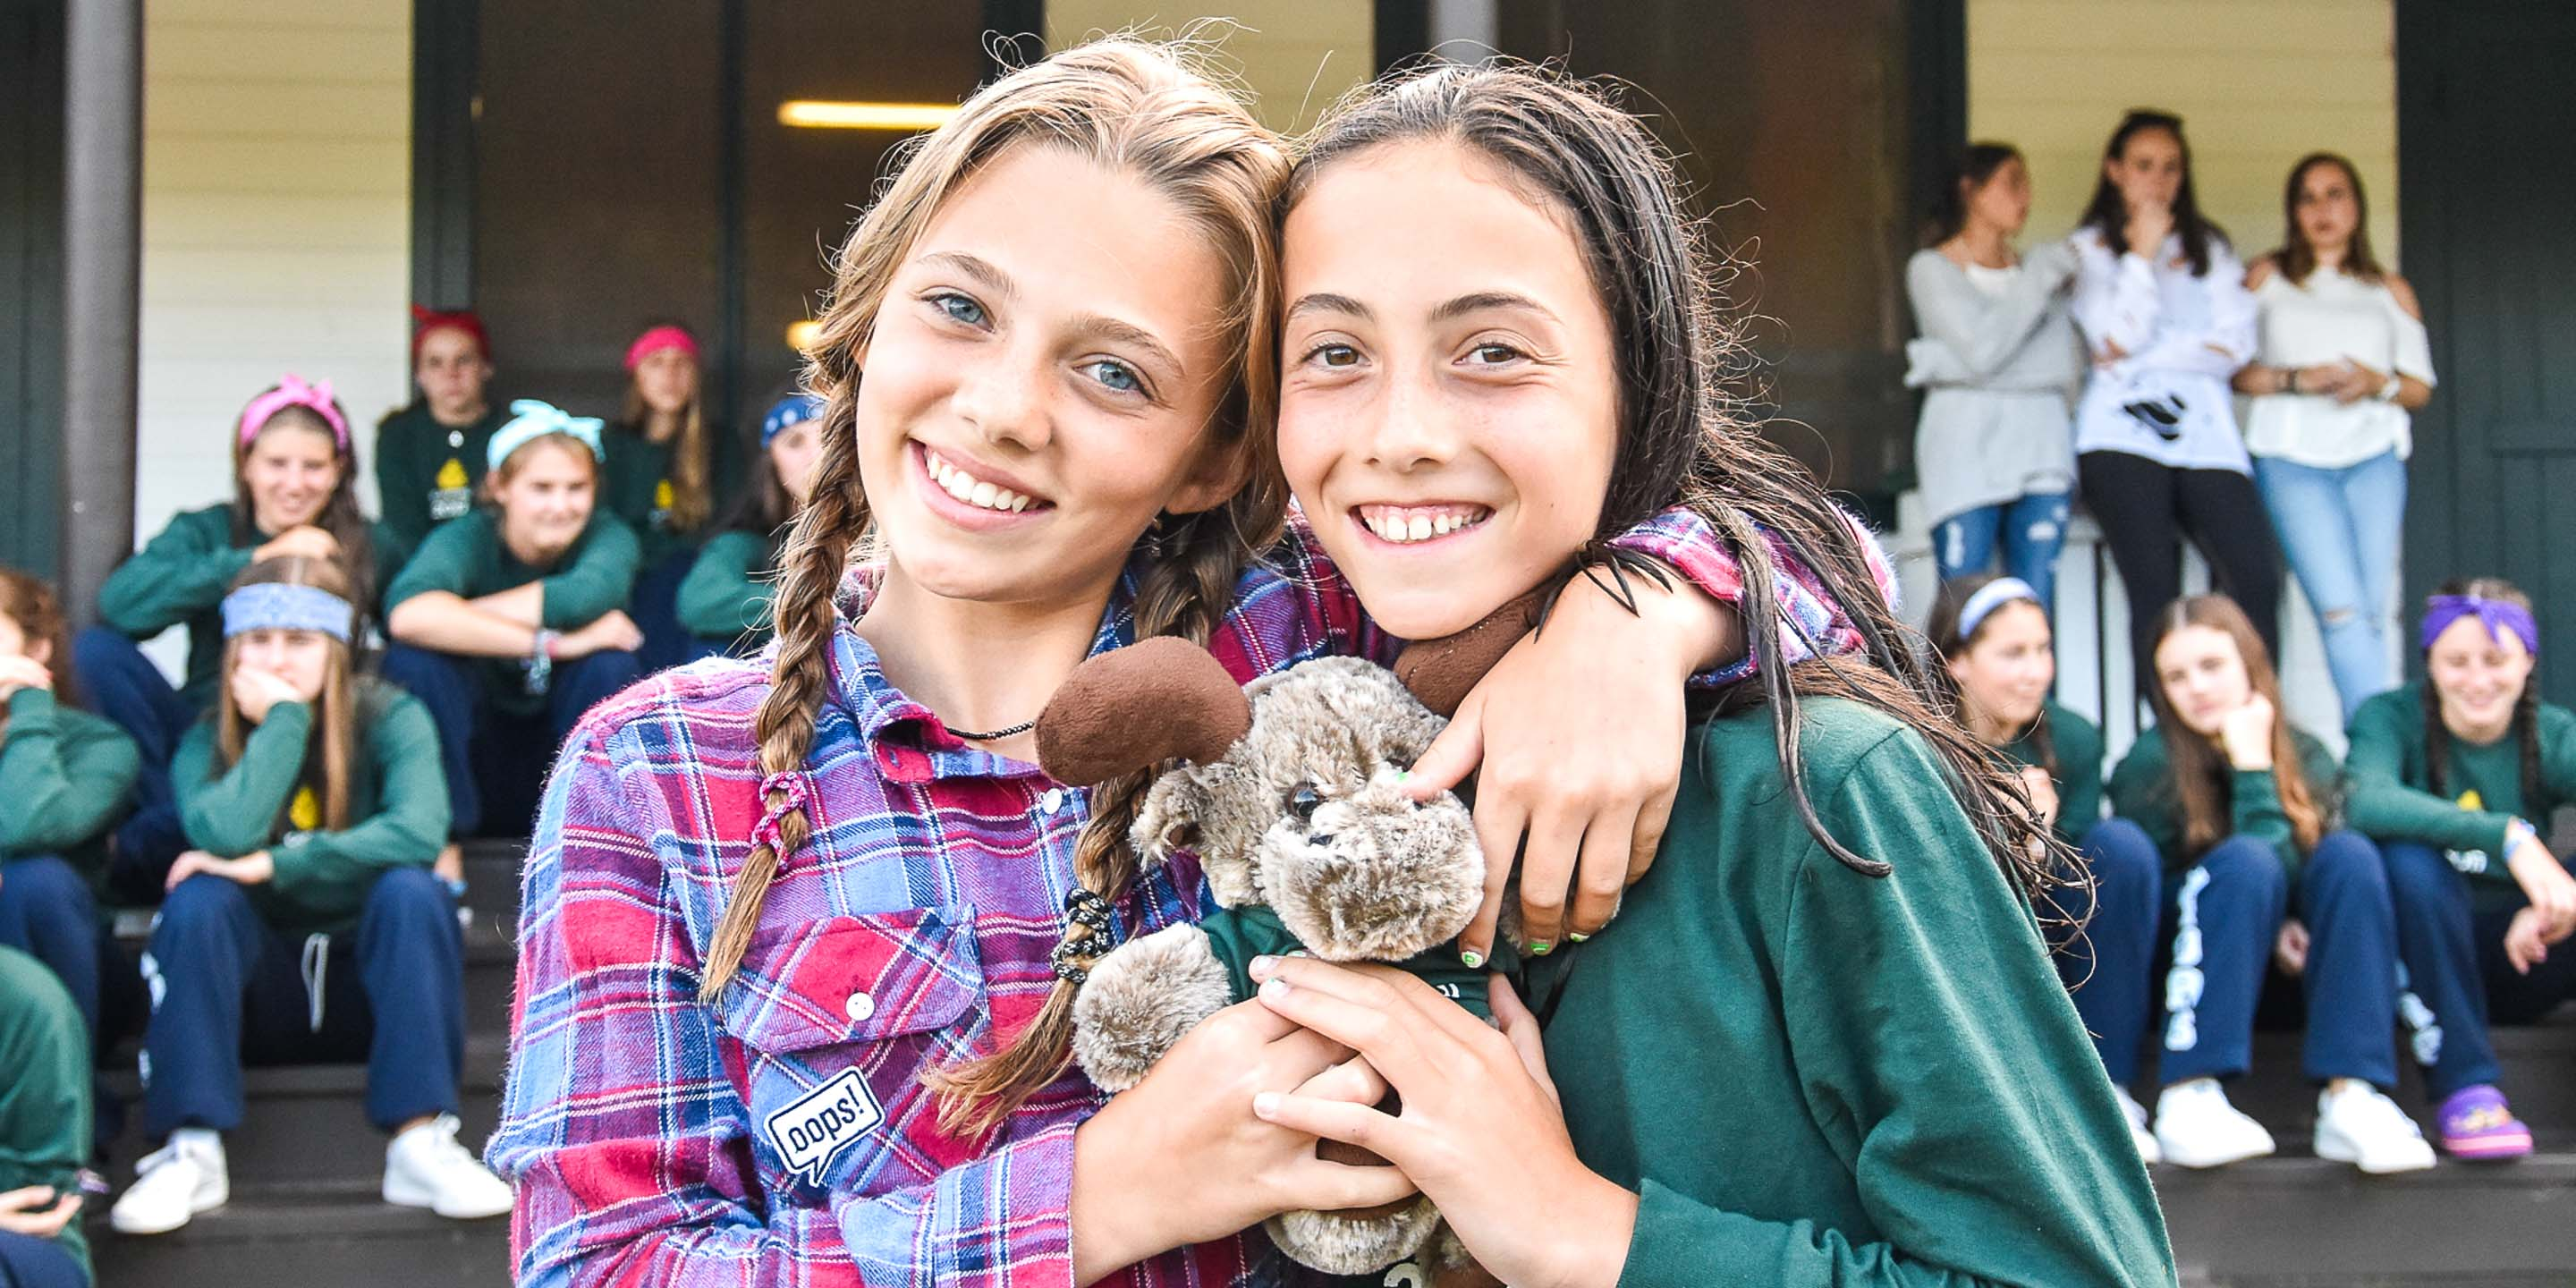 Two girls smile at camera while holding moose plush